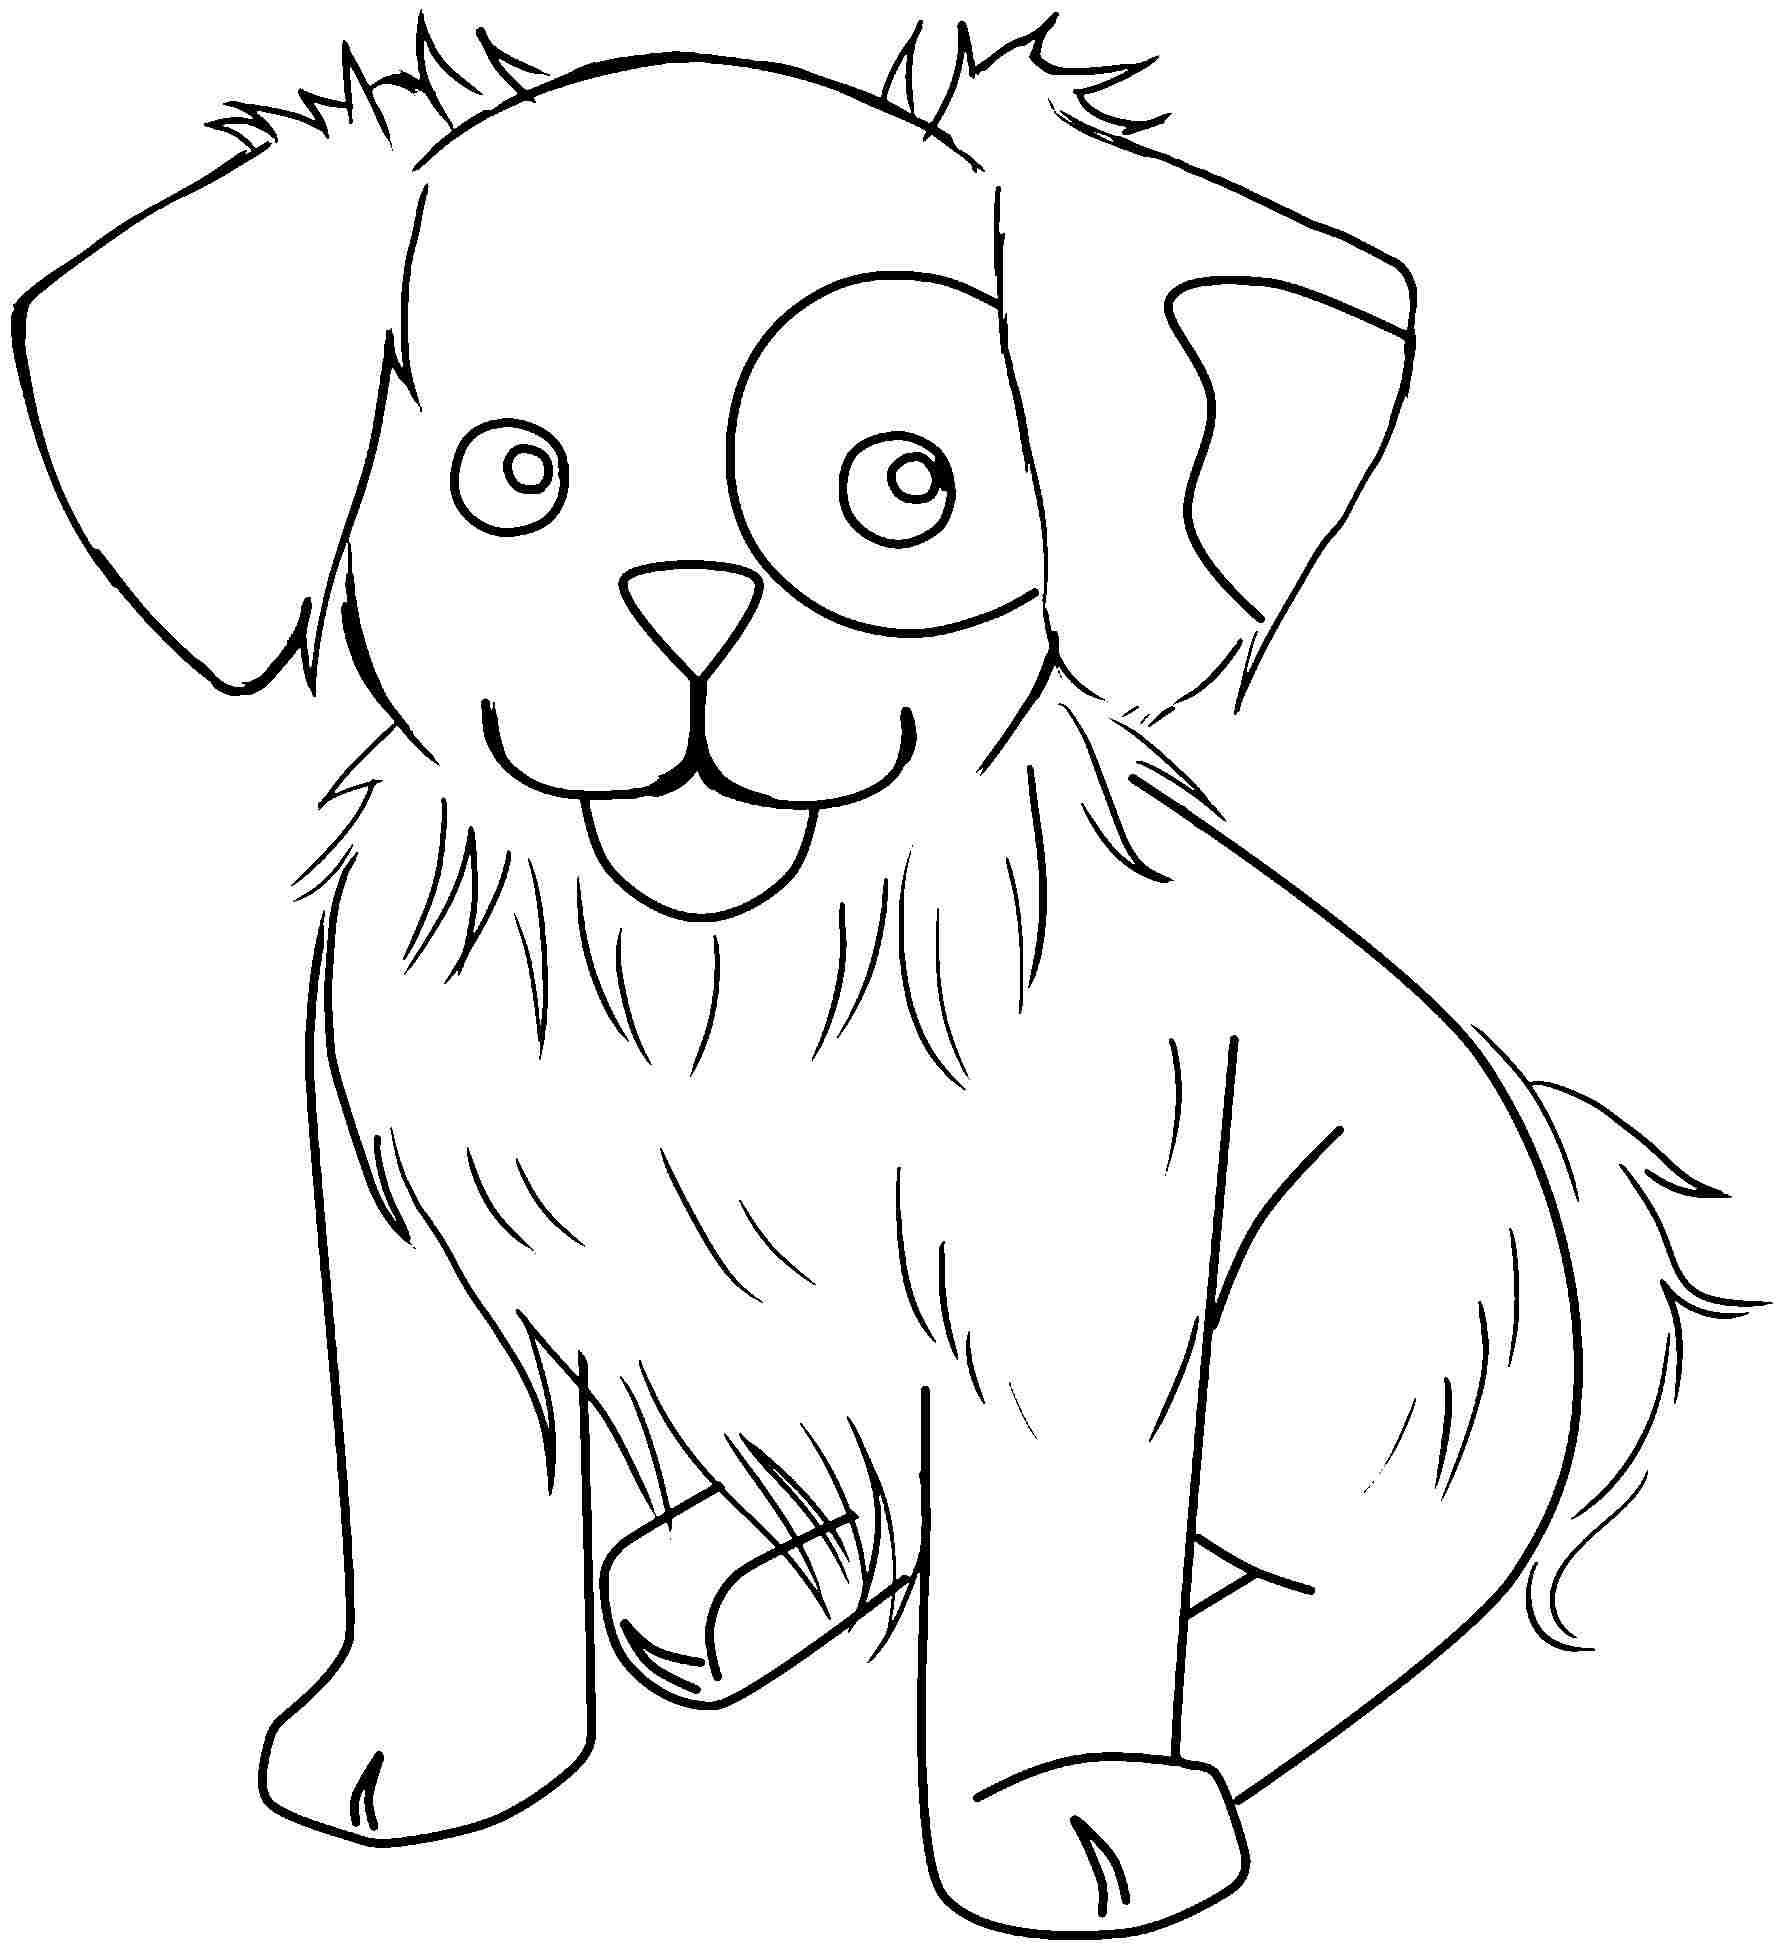 free pictures to print printable sloth coloring pages gallery free coloring sheets free print pictures to